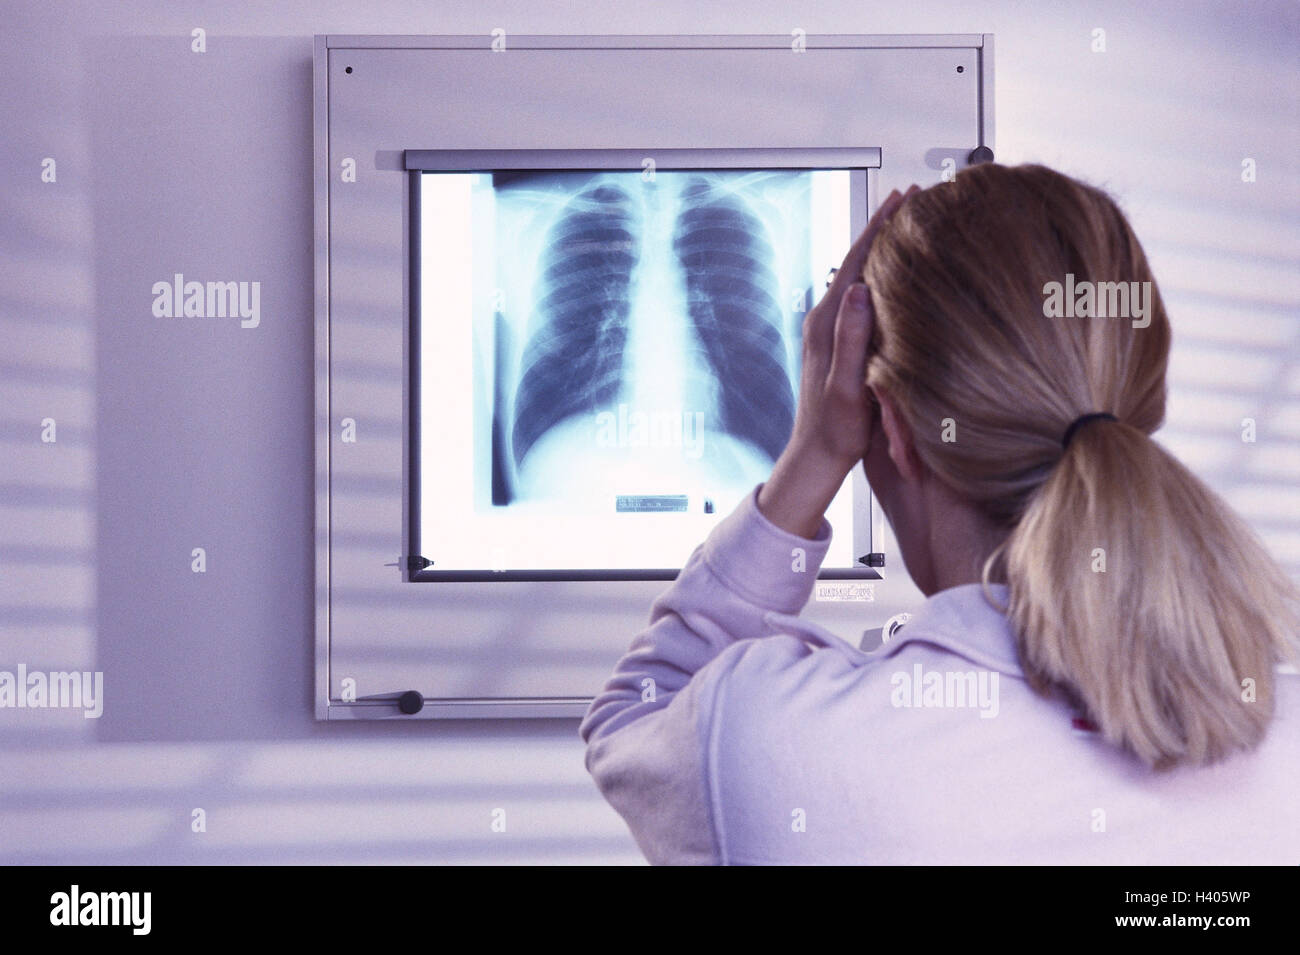 Medical practise, roentgenogram, patient, gesture, desperation, back view, practise, roentgenology, X-ray picture, - Stock Image